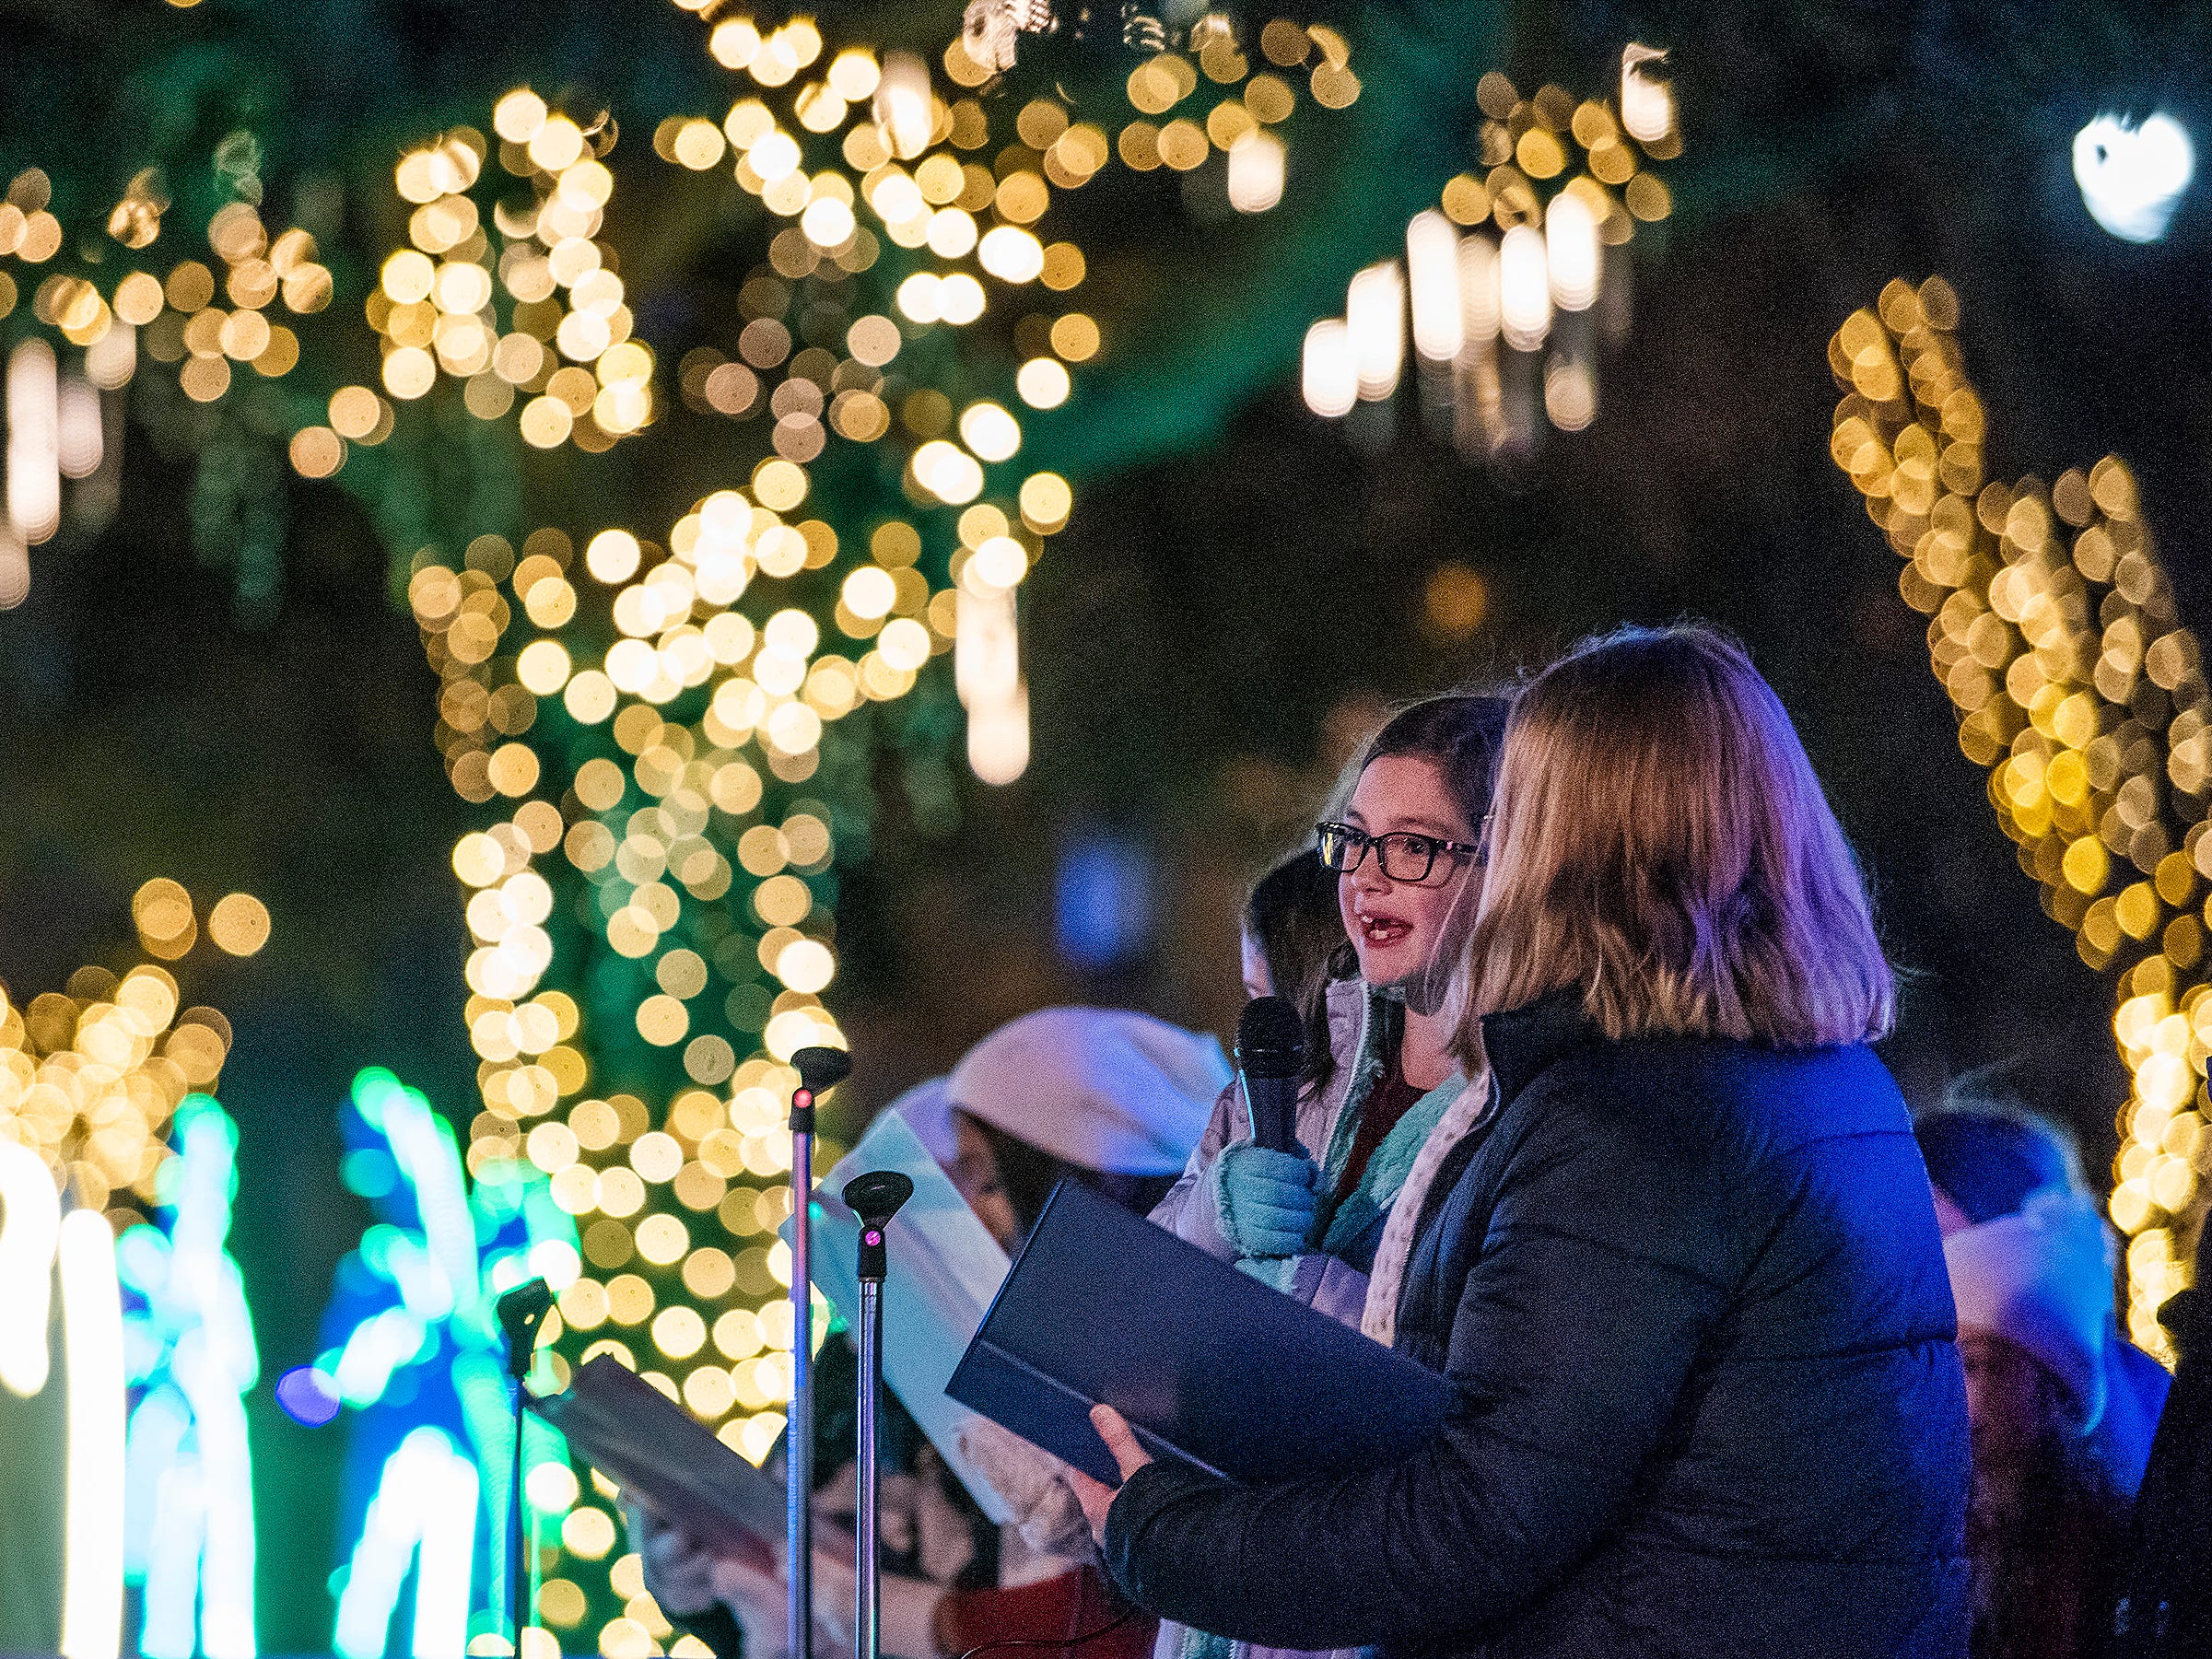 Singers from the The Vela Studio perform during the City of Montgomery Christmas Tree lighting in Montgomery, Ala., on Tuesday evening November 27, 2018.